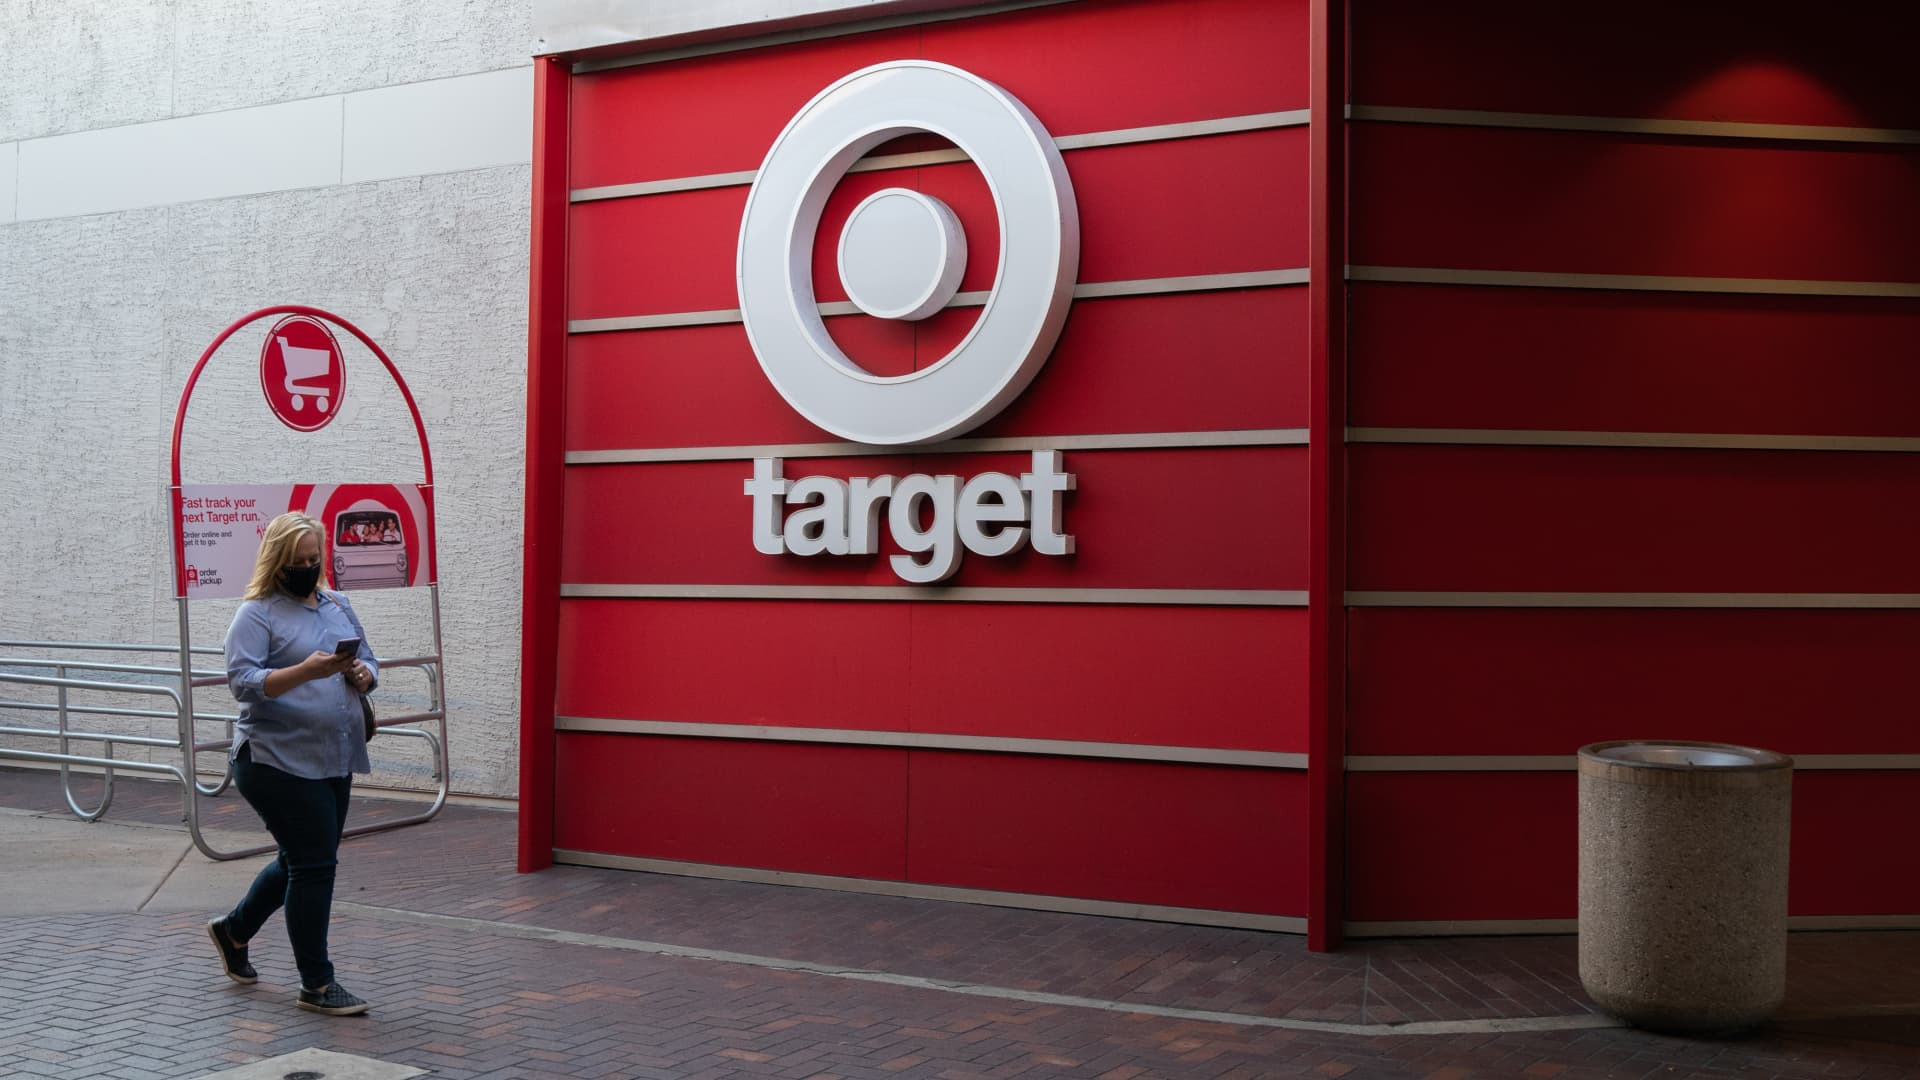 A person wearing a protective mask walks past a Target Corp. store at the Grossmont Center Mall in La Mesa, California, U.S., on Thursday, Feb. 11, 2021.